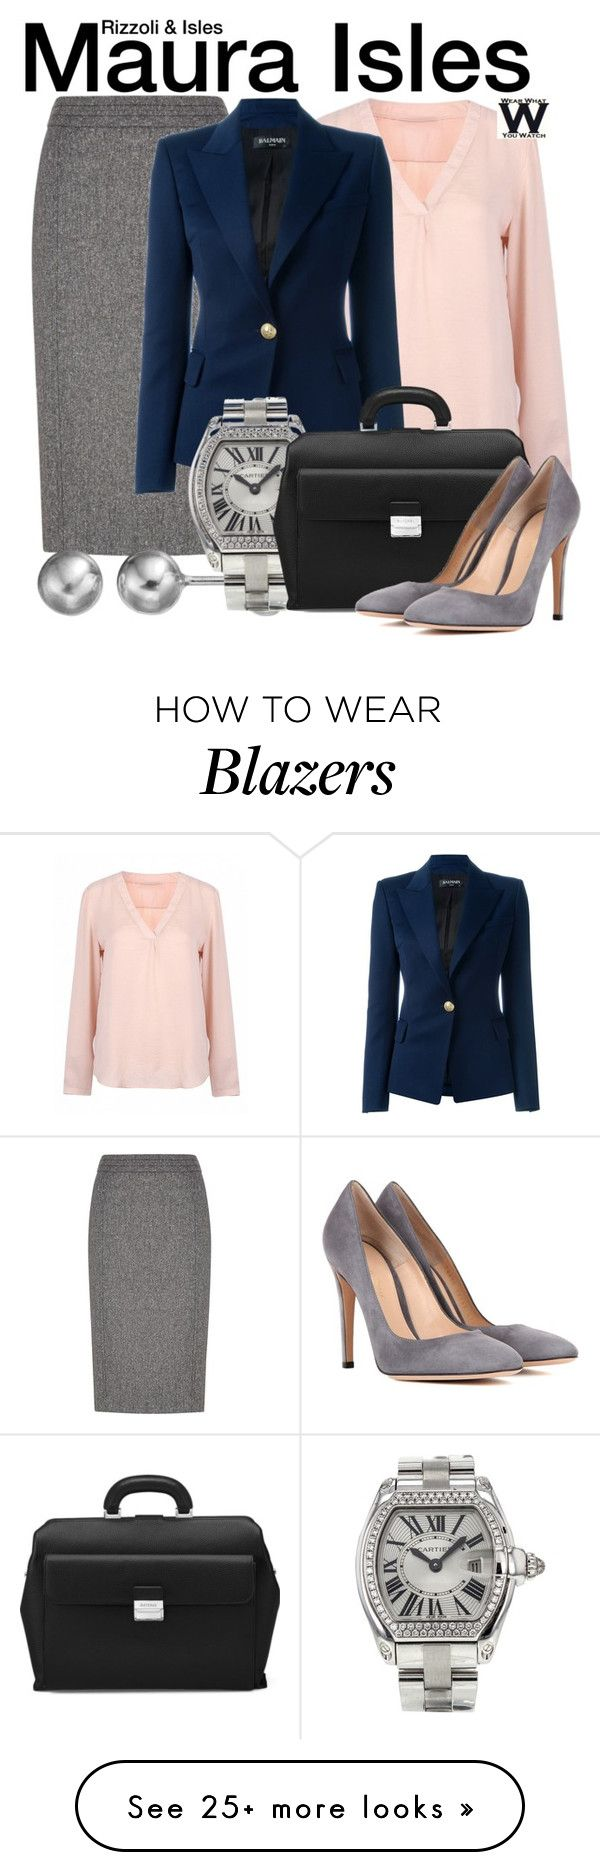 Like this style, the colors are just okay. I don't like blush pink. The blazer is nice but button is too flashy for me. Love the skirt style